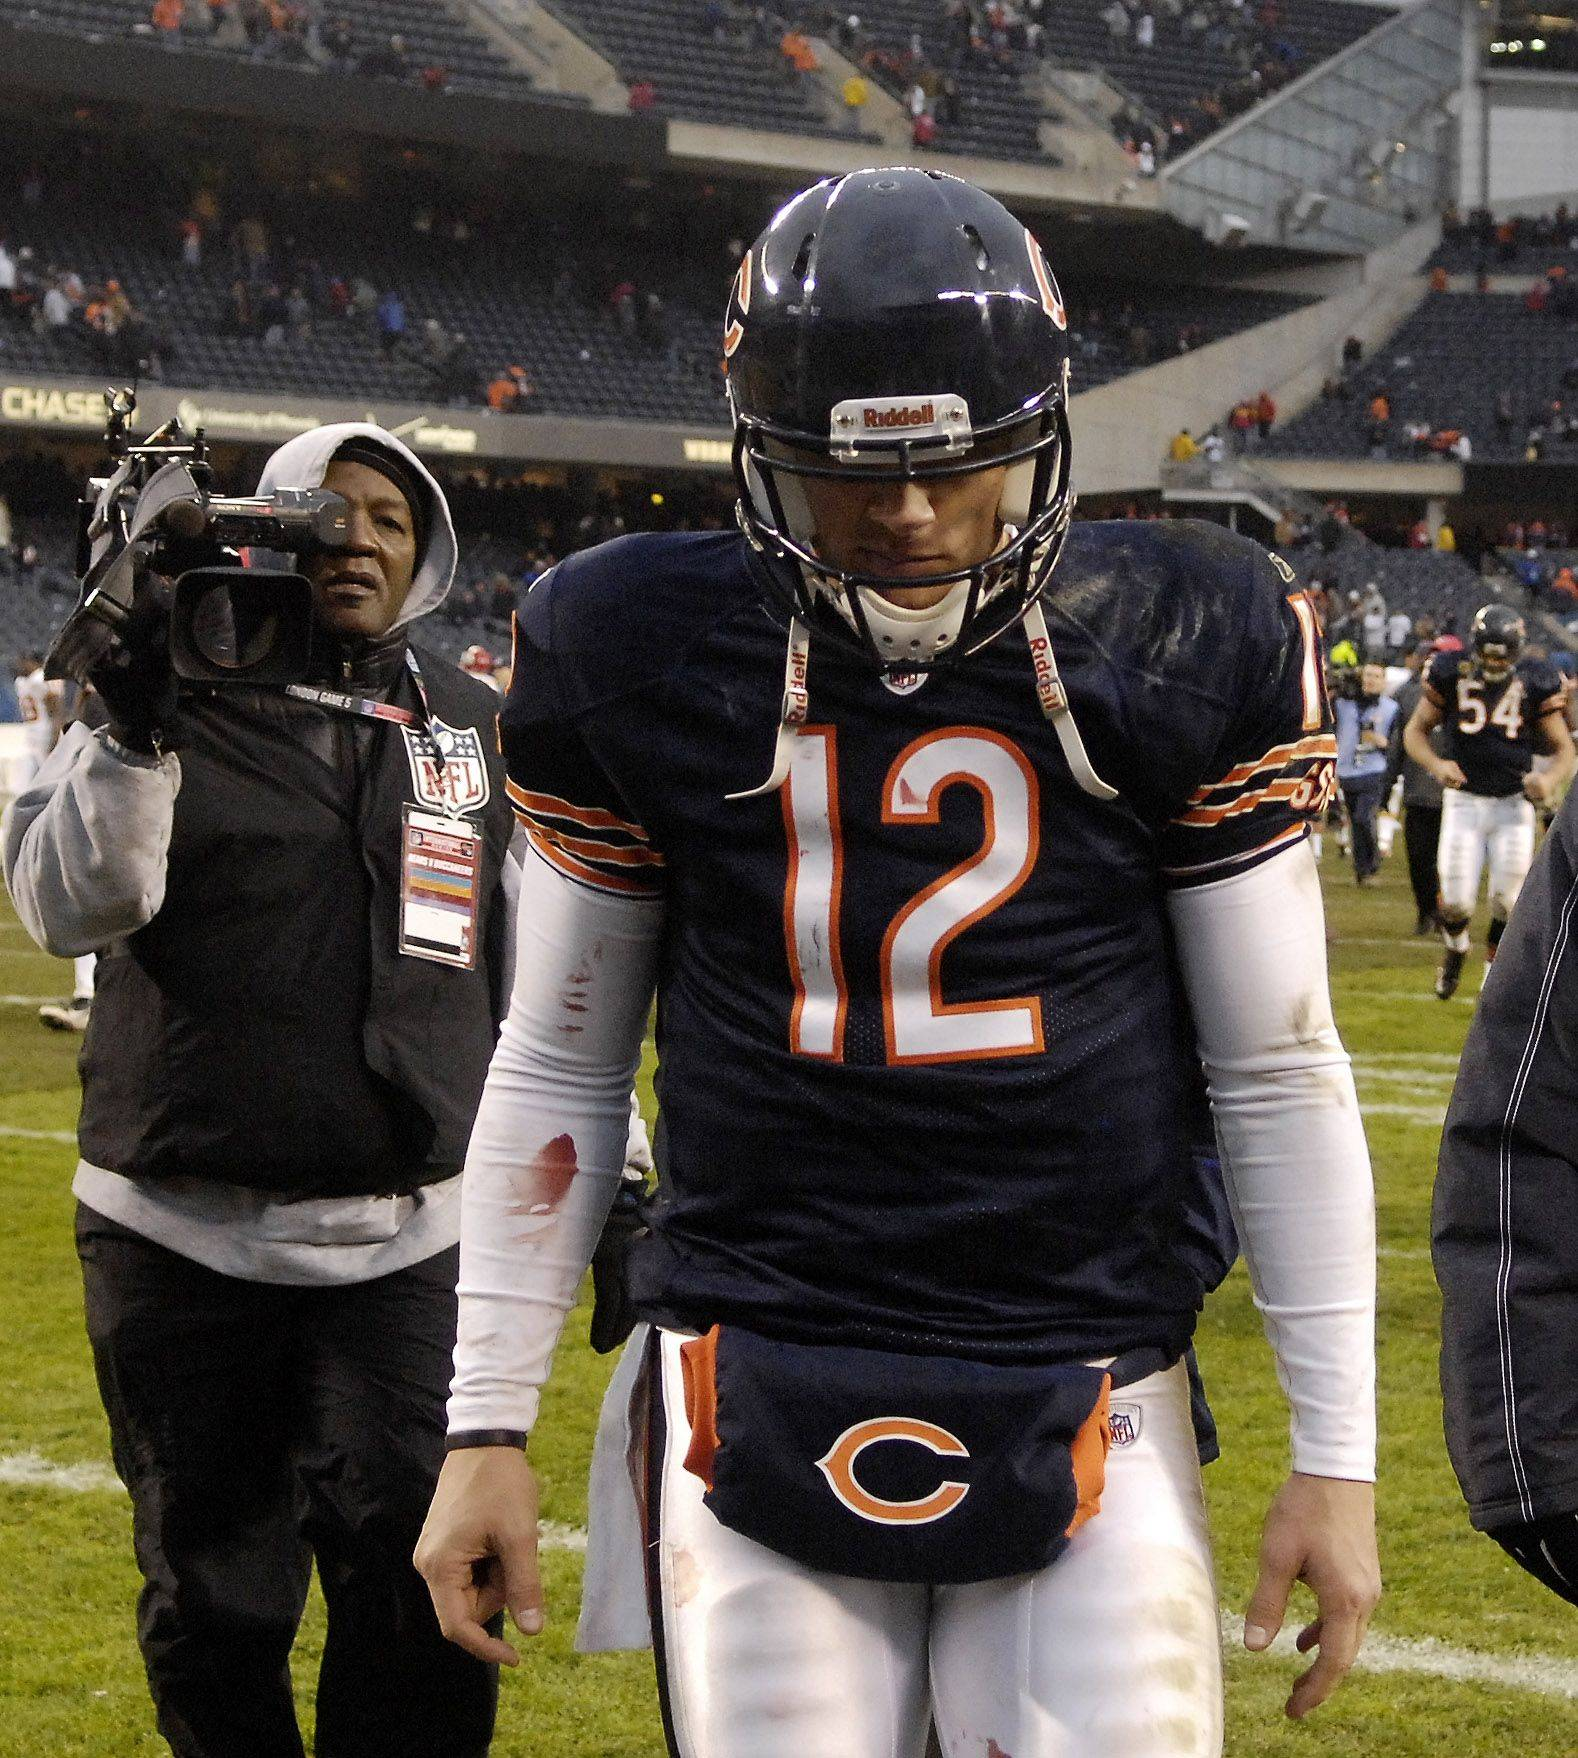 Bears quarterback Caleb Hanie walks off the field after Sunday's loss to the Chiefs at Soldier Field in Chicago.